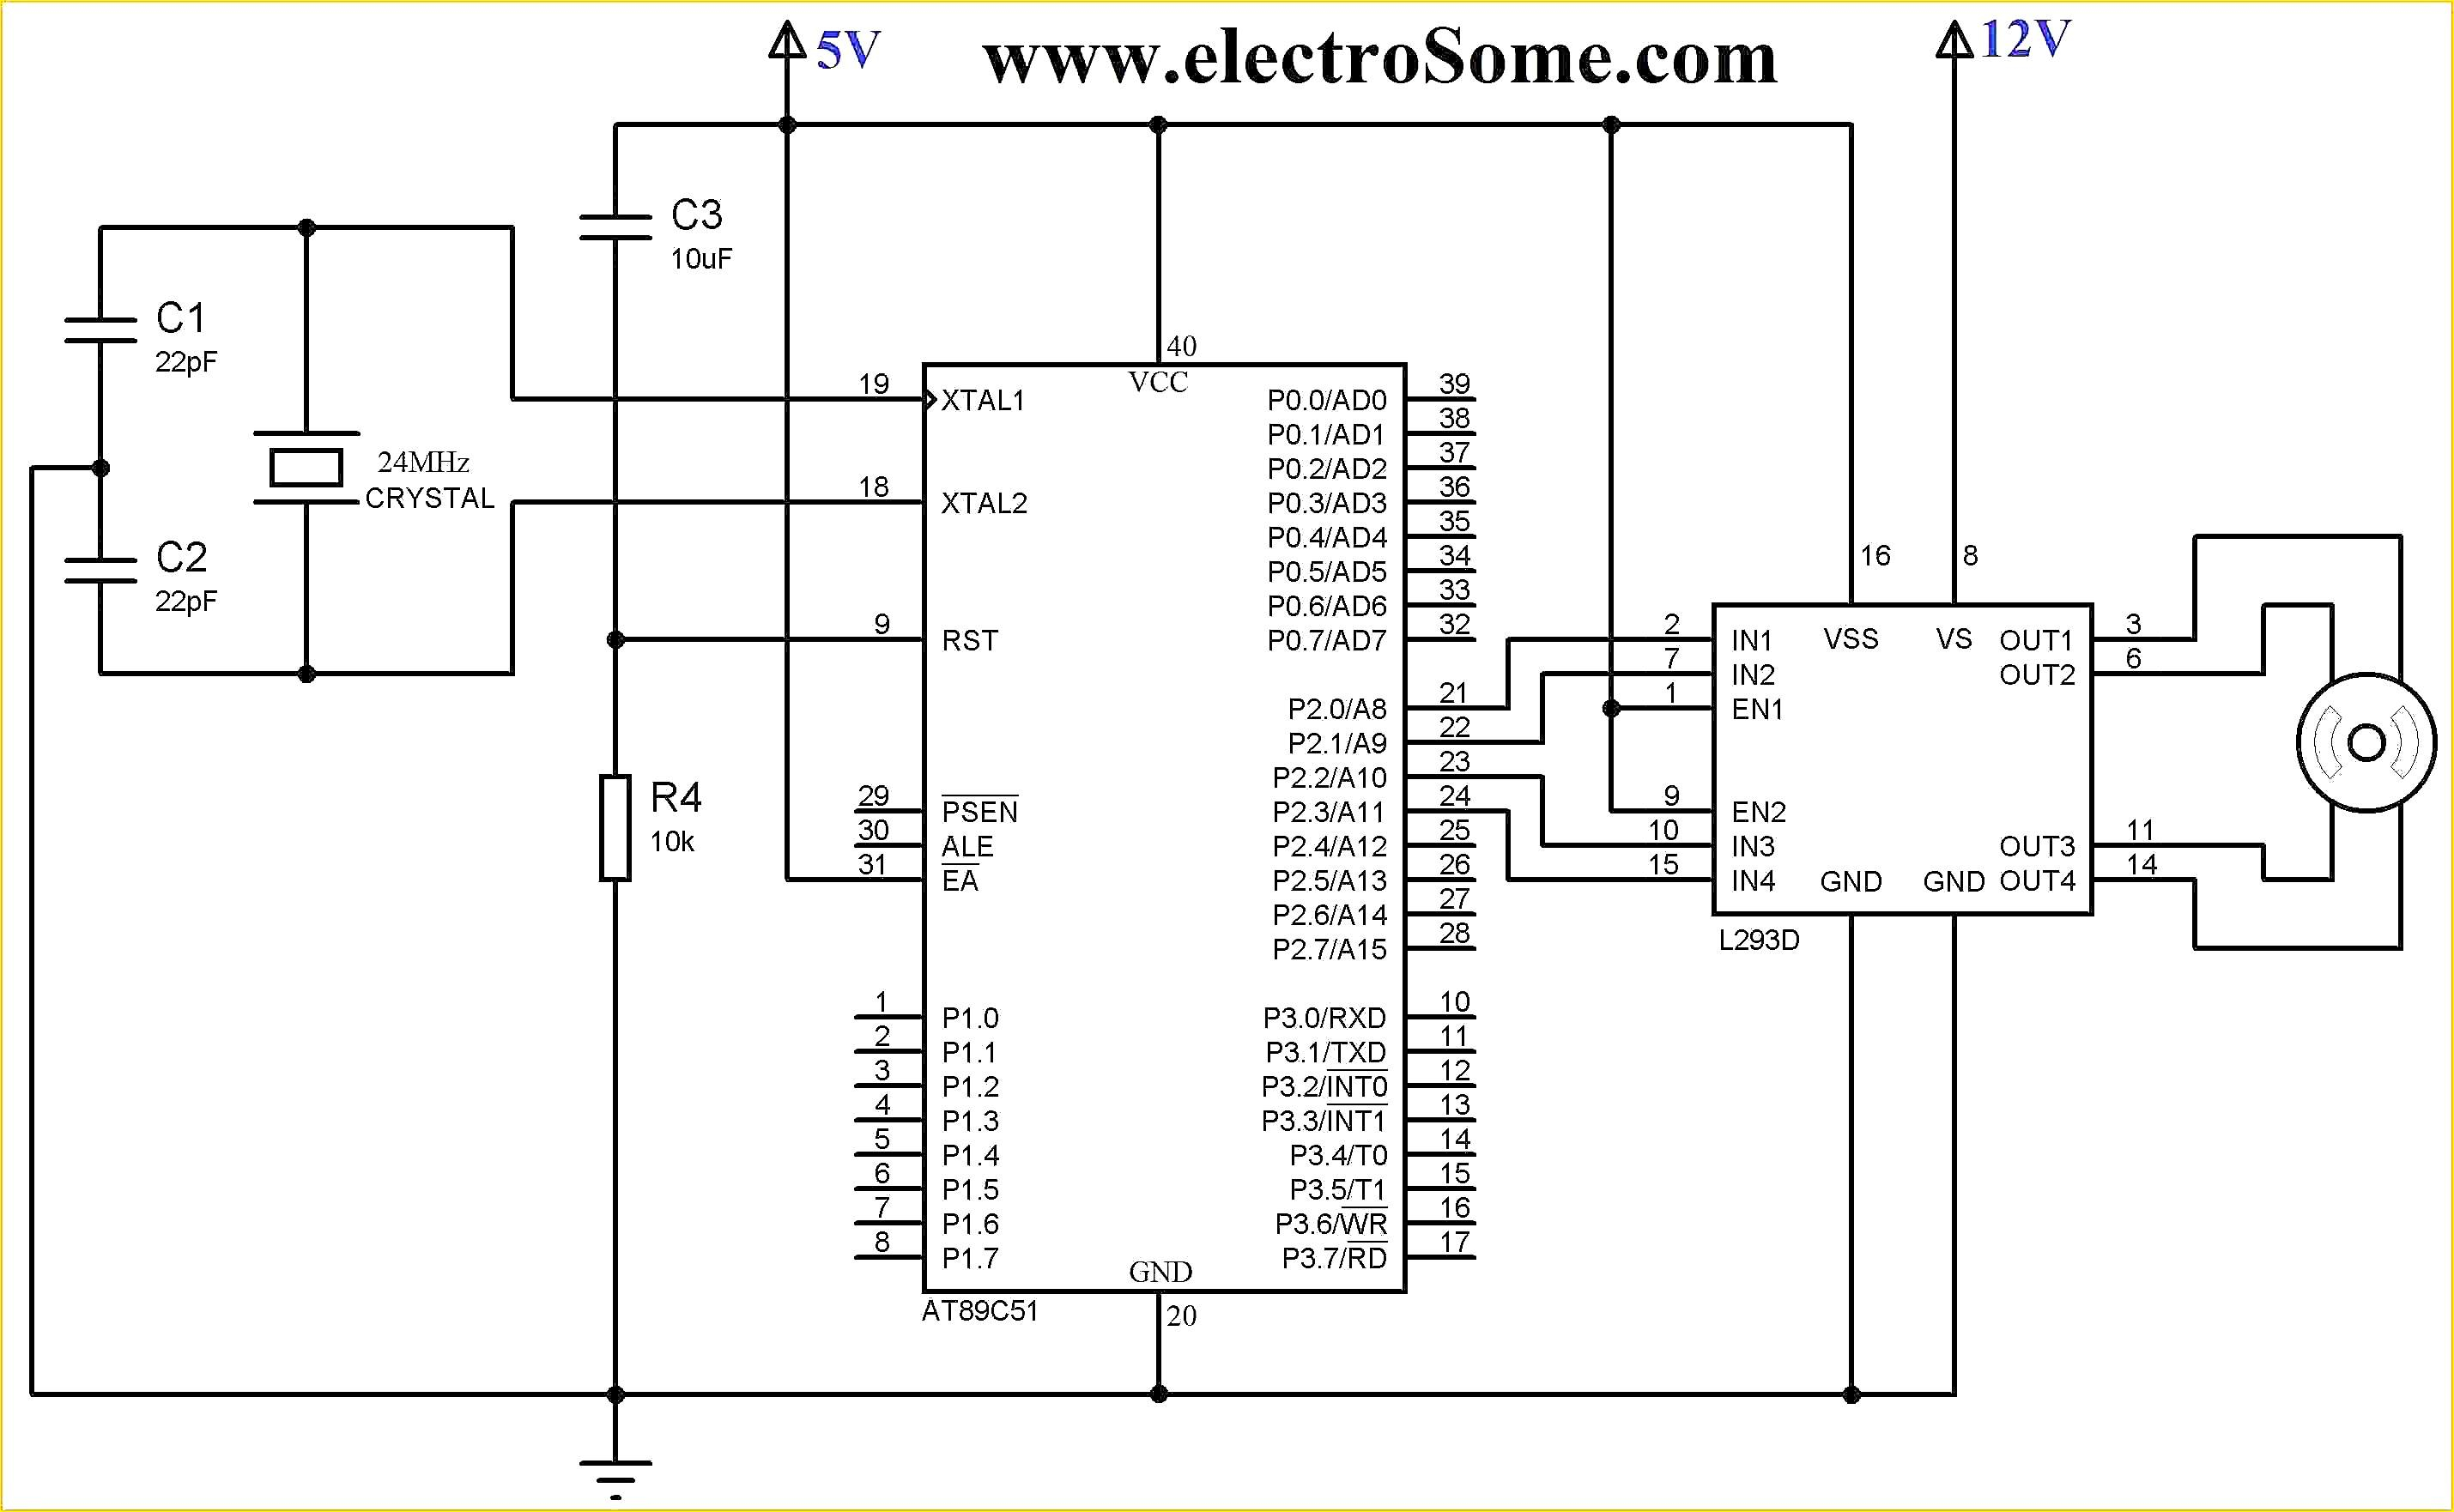 bunker hill security camera 91851 wiring diagram